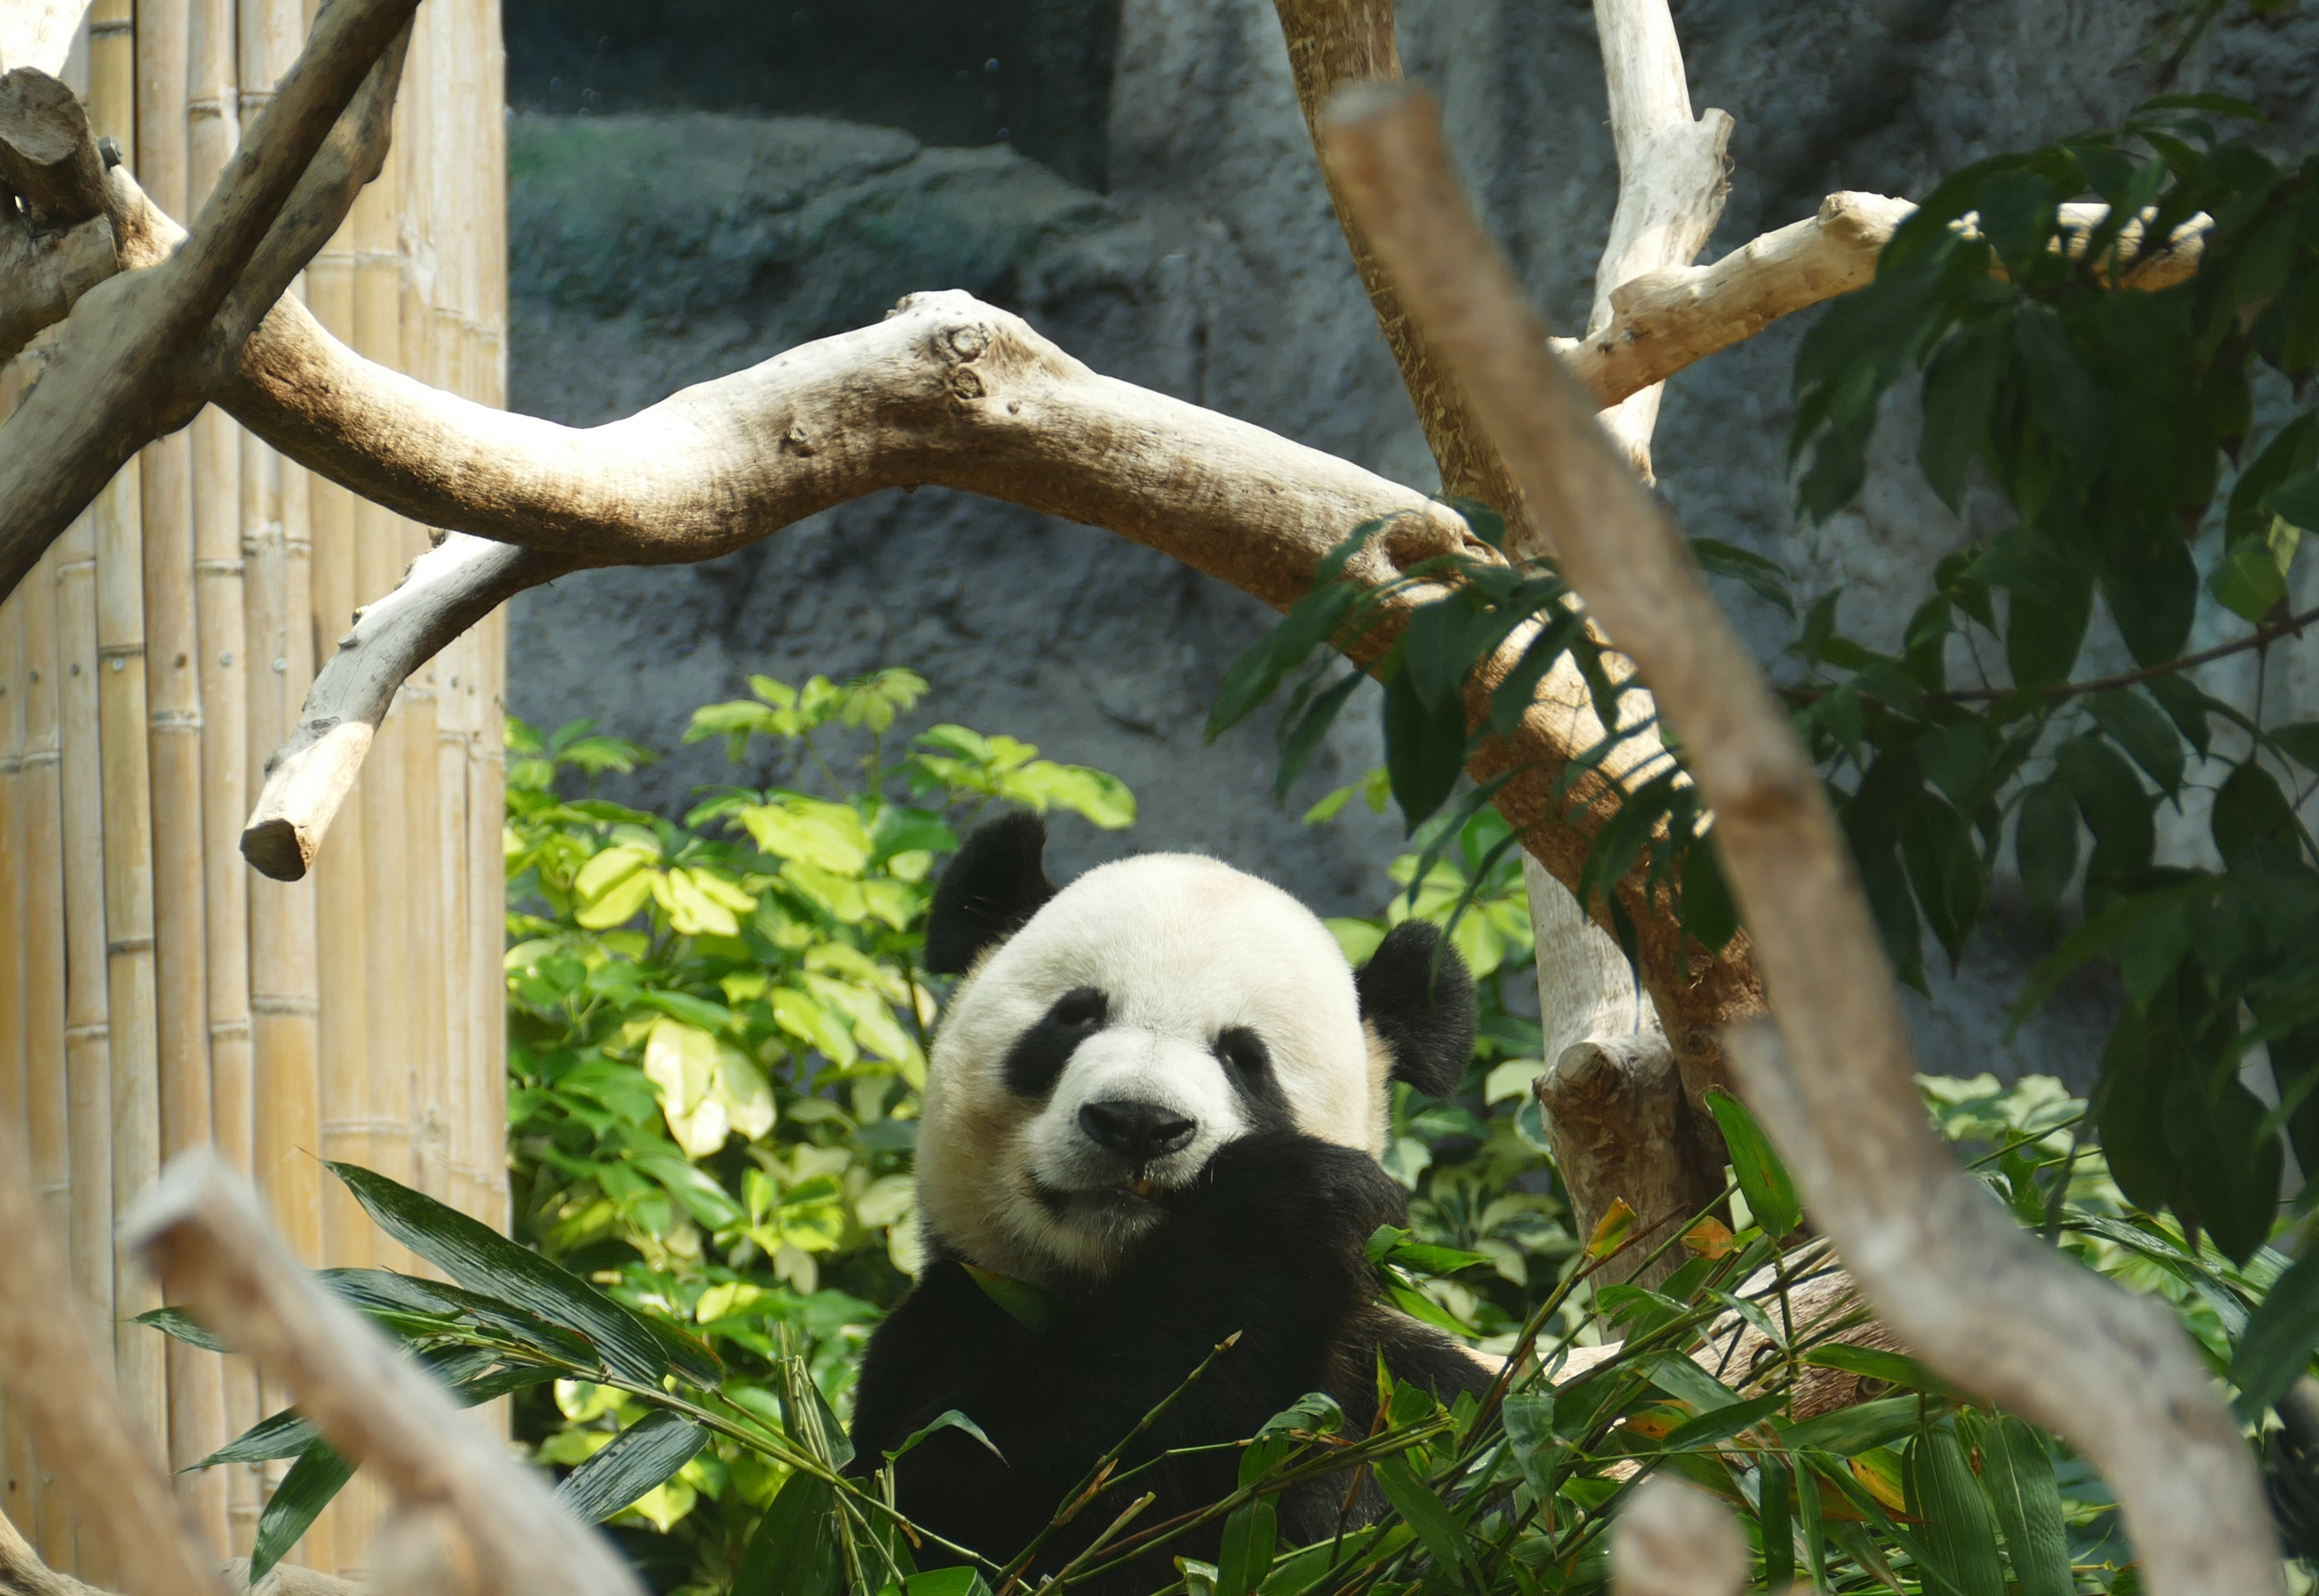 112017 download wallpaper Animals, Panda, Bamboo, Wood, Tree screensavers and pictures for free